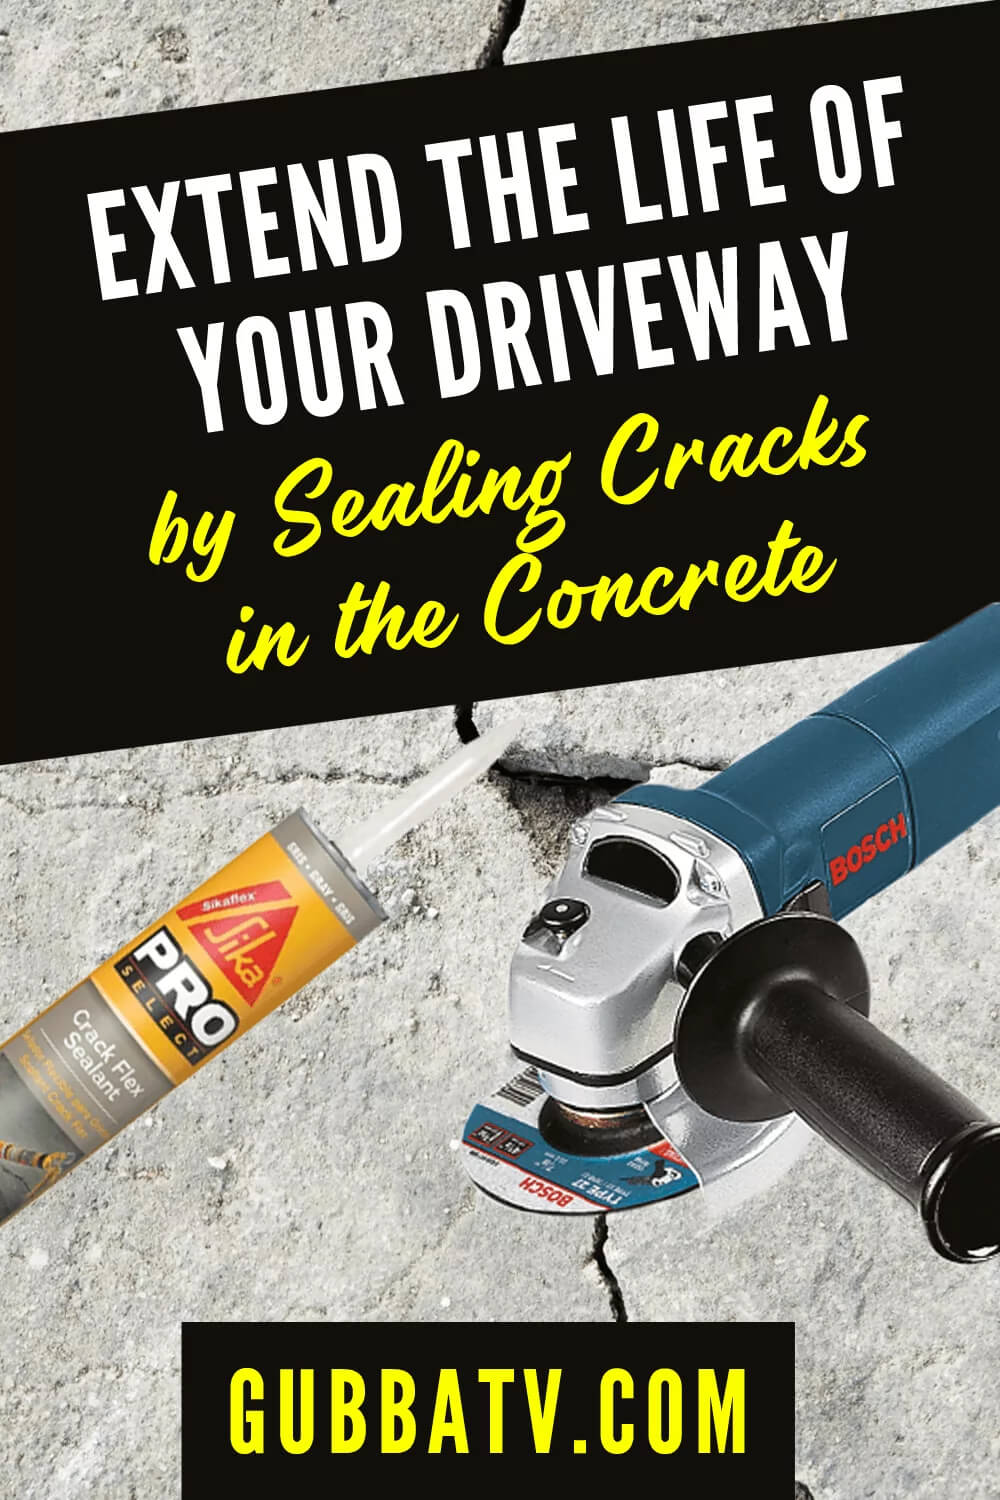 Extend the Life of Your Driveway by Sealing Cracks in the Concrete